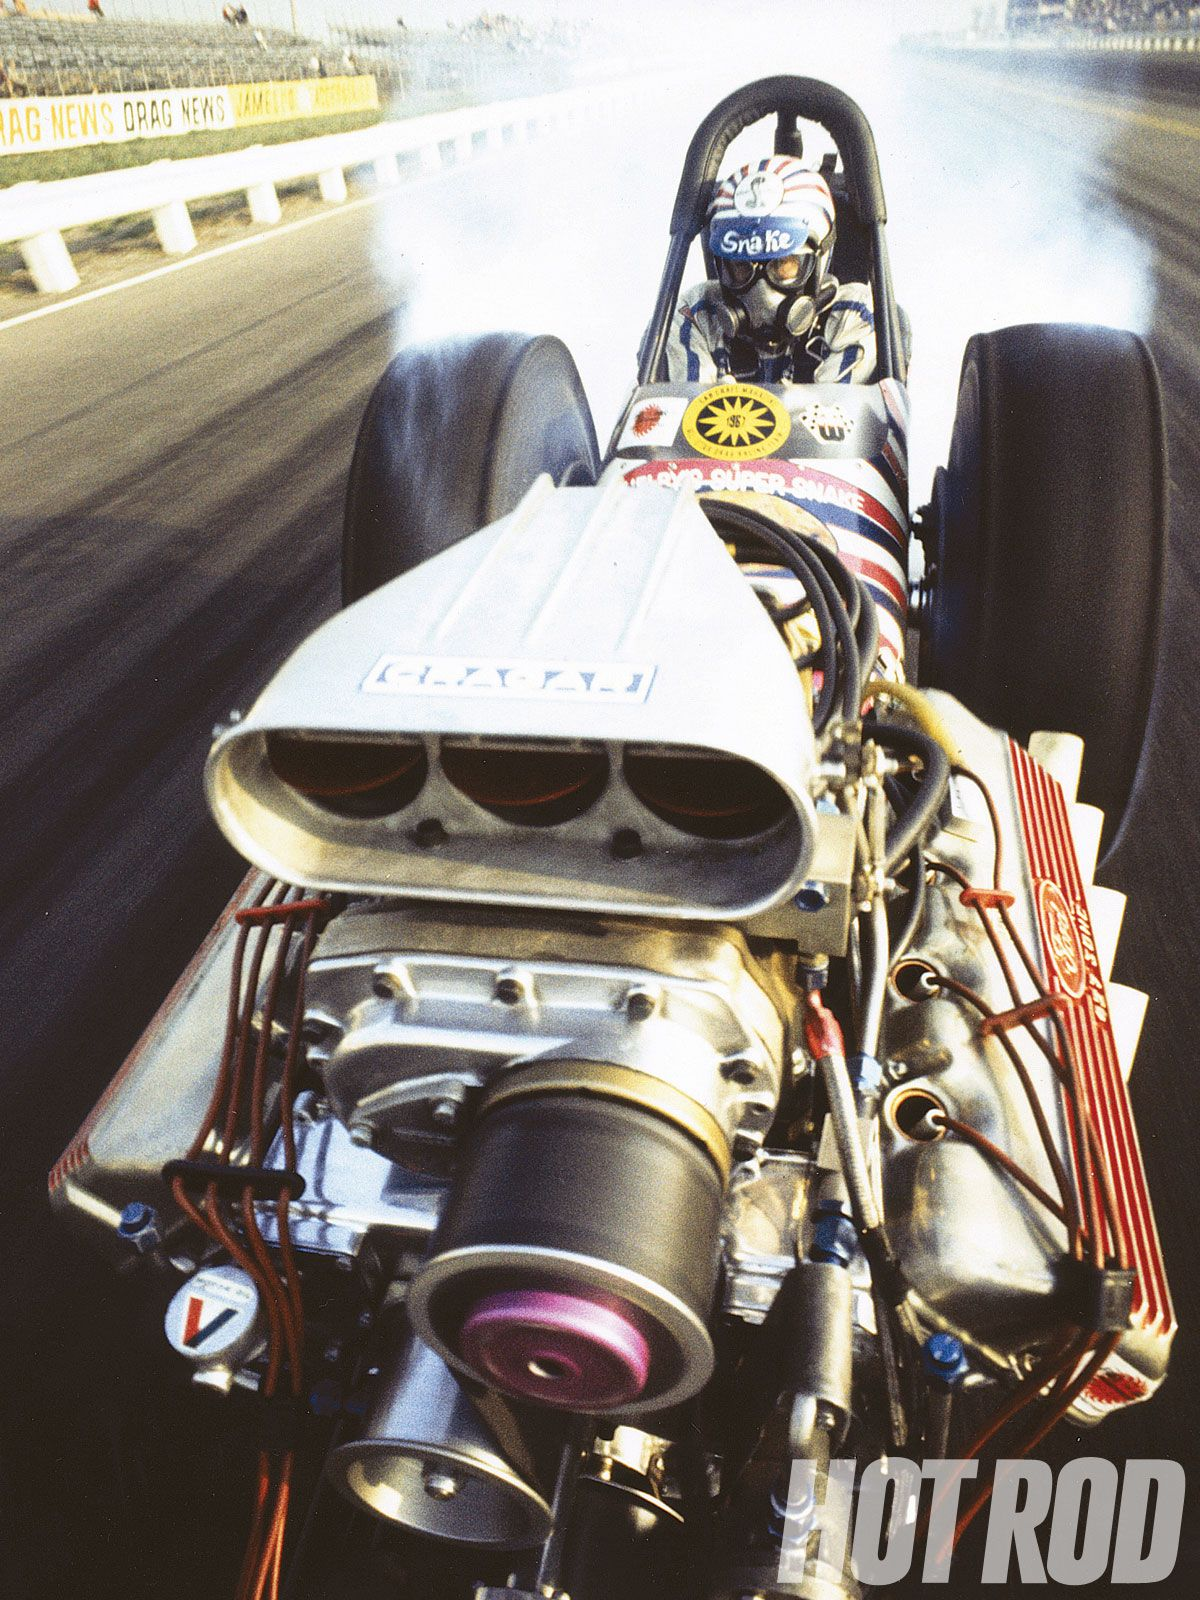 hrdp_1010_13_o+don_prudhomme_legendary_nhra_drag_racer+dragster_with_a_427_engine